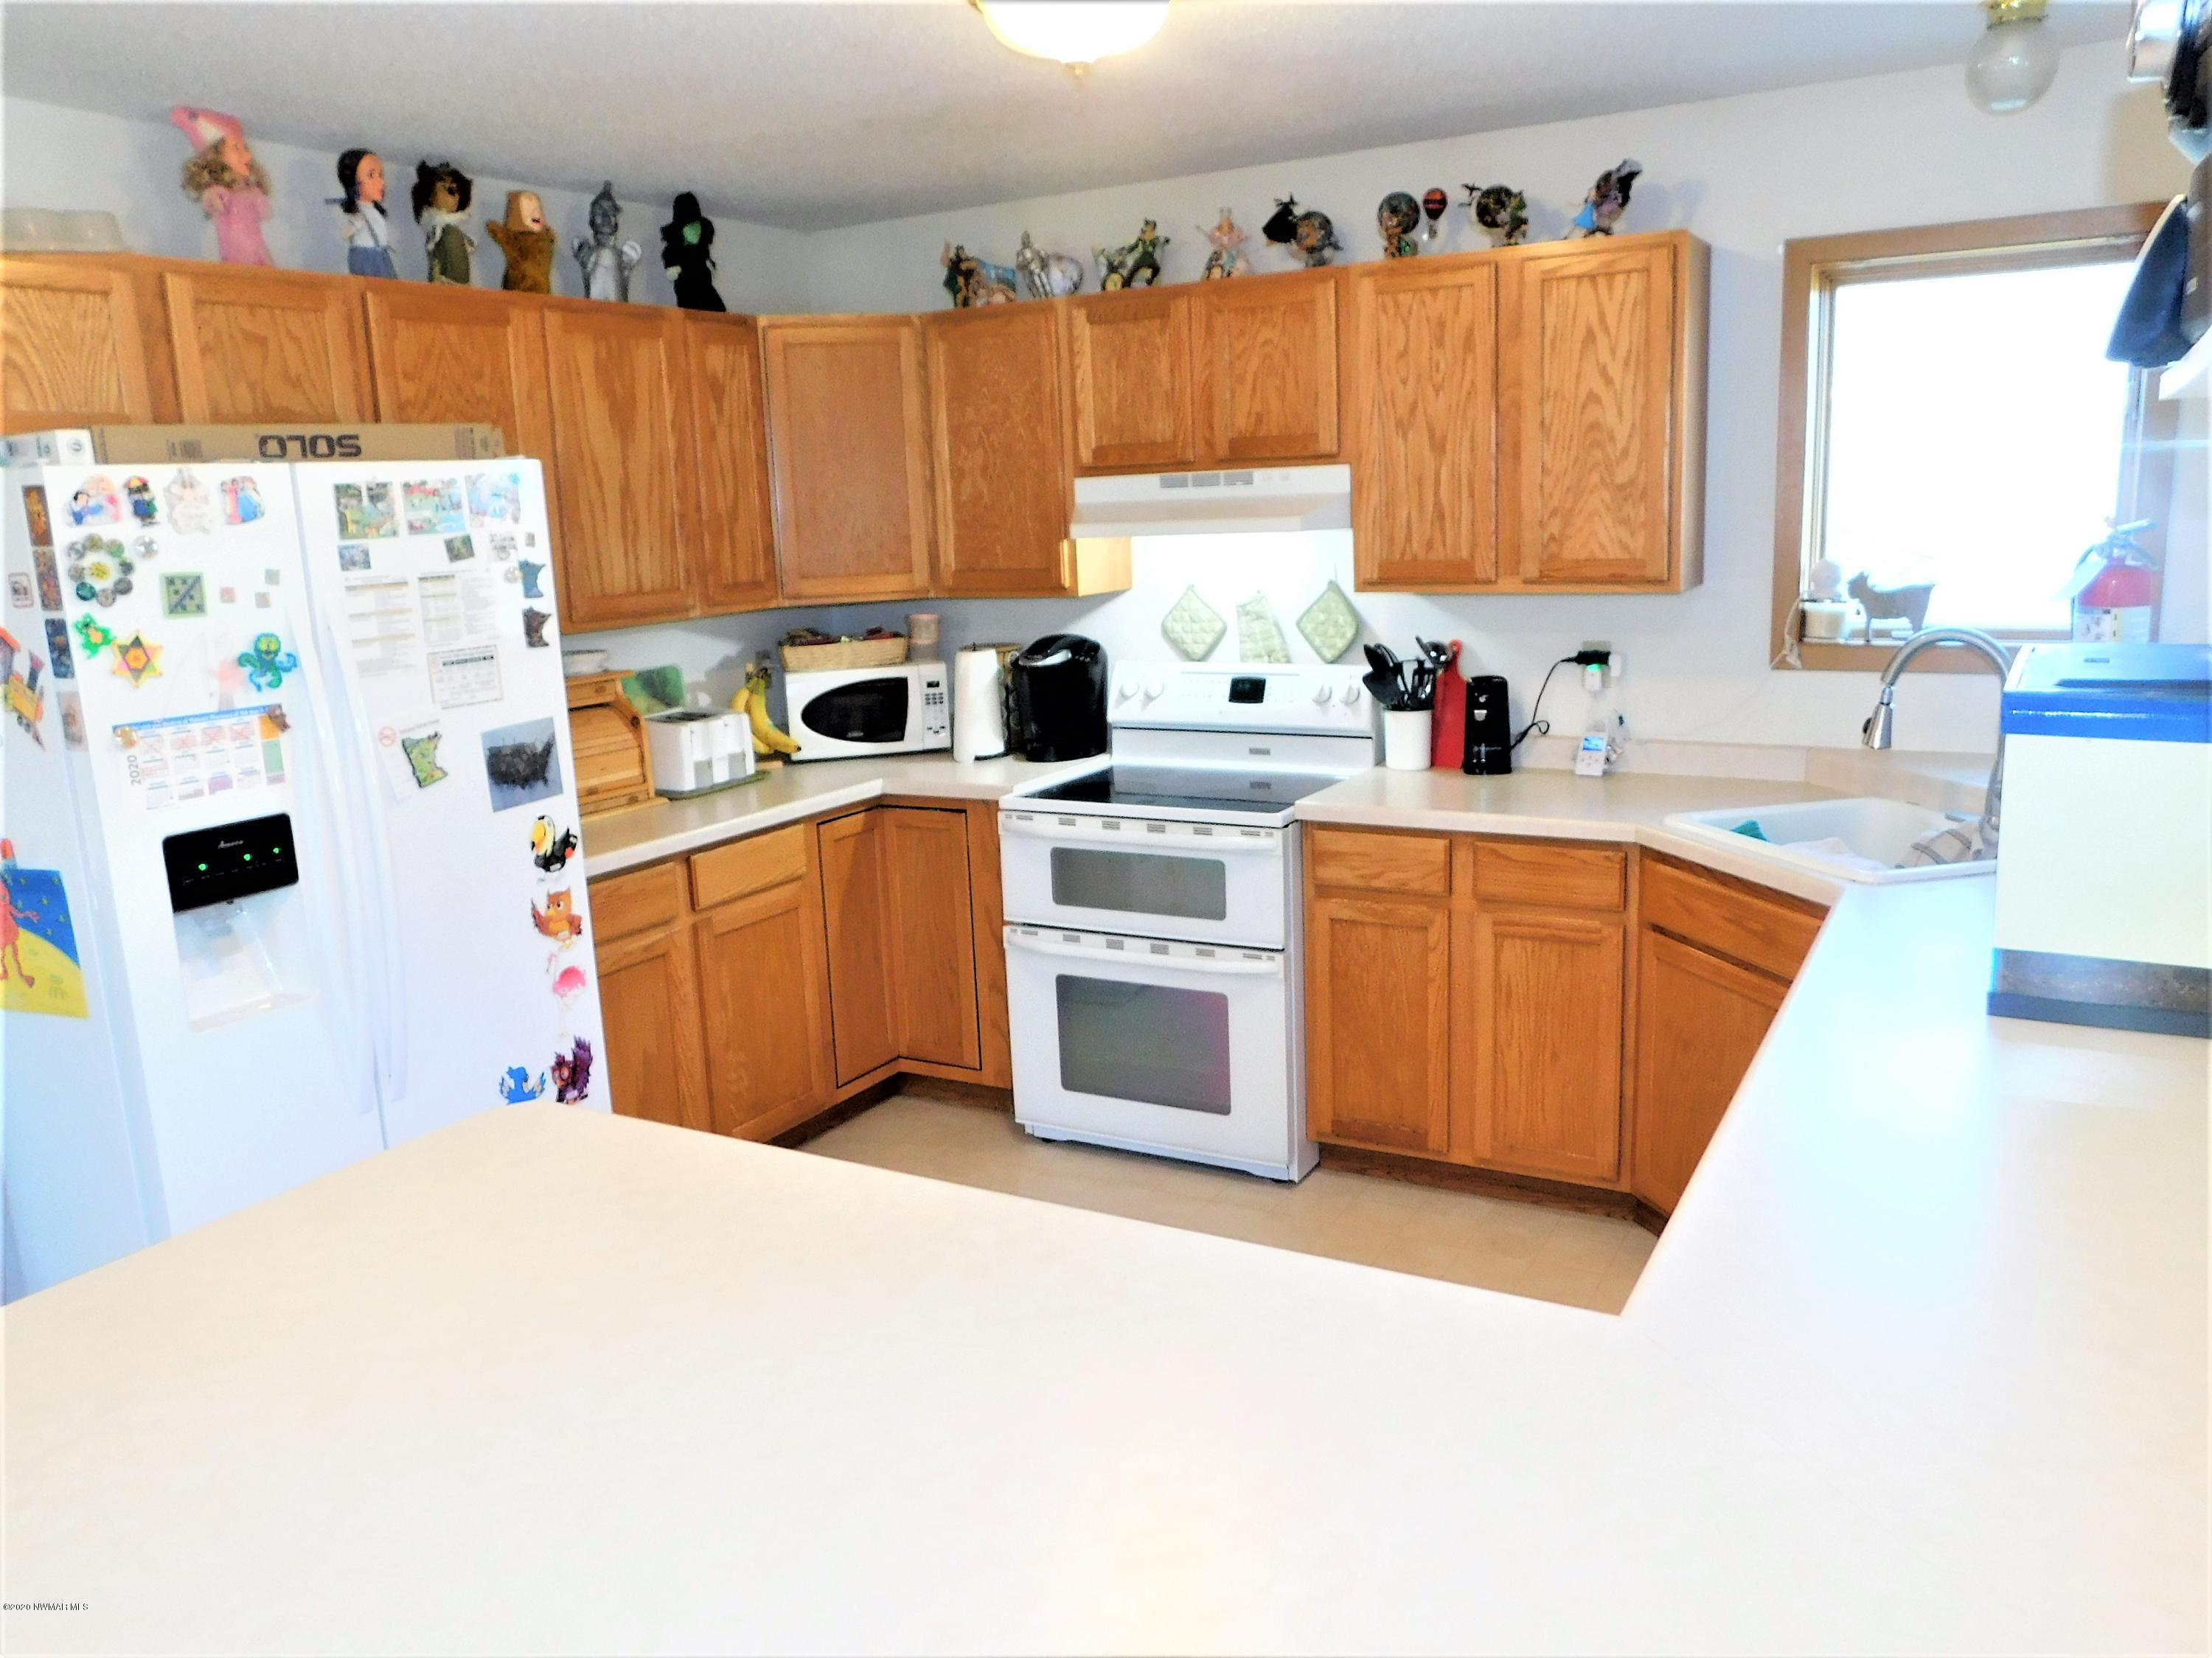 Food Prep is a breeze with the vast amount of kitchen countertops and cabinets.